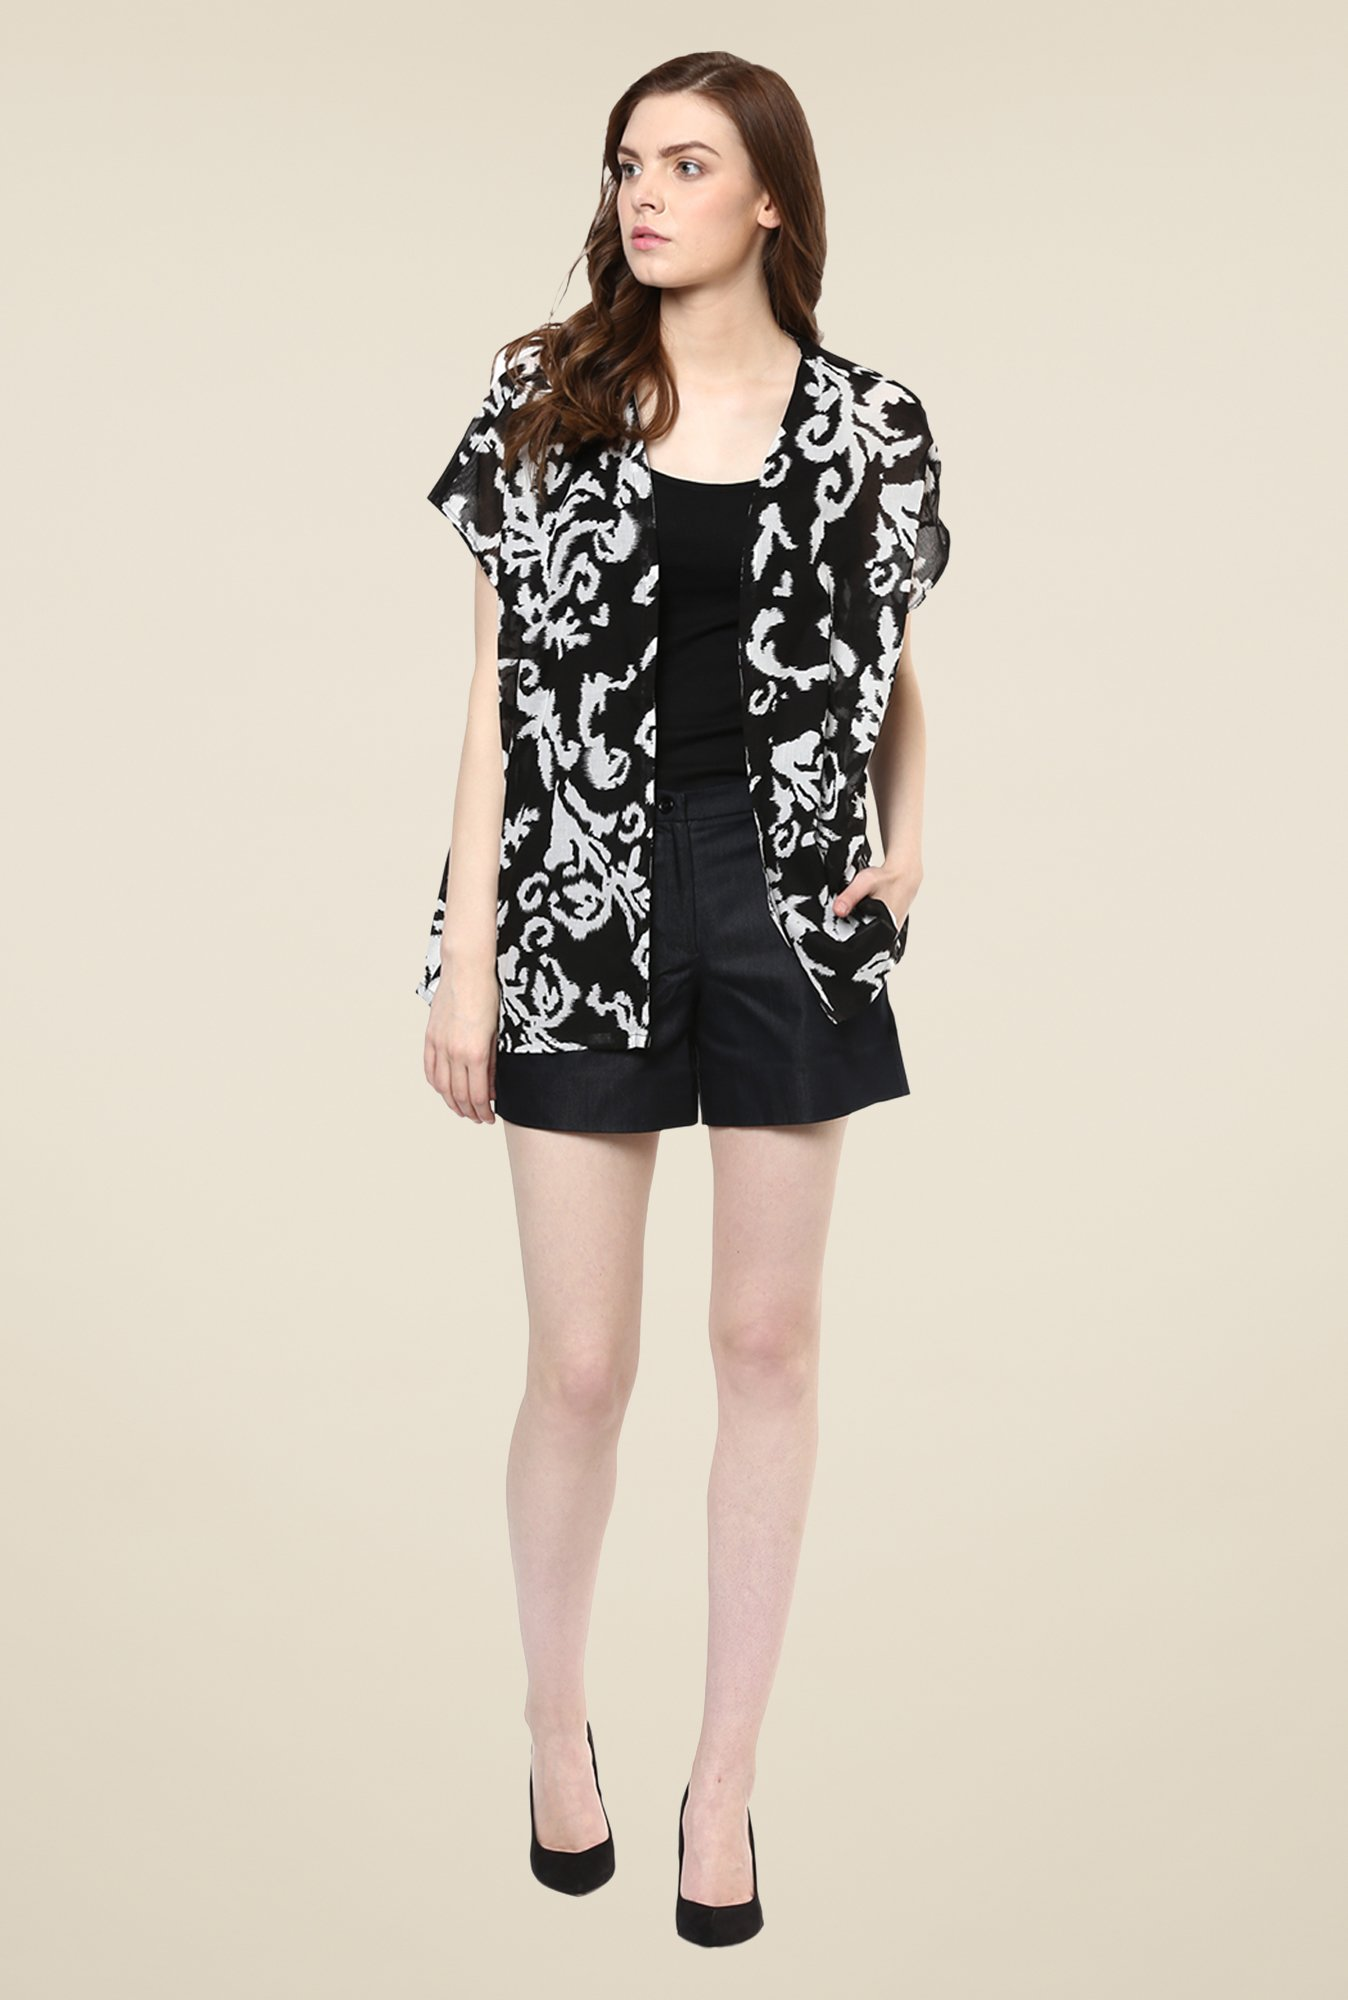 Avirate Black & White Printed Shrug